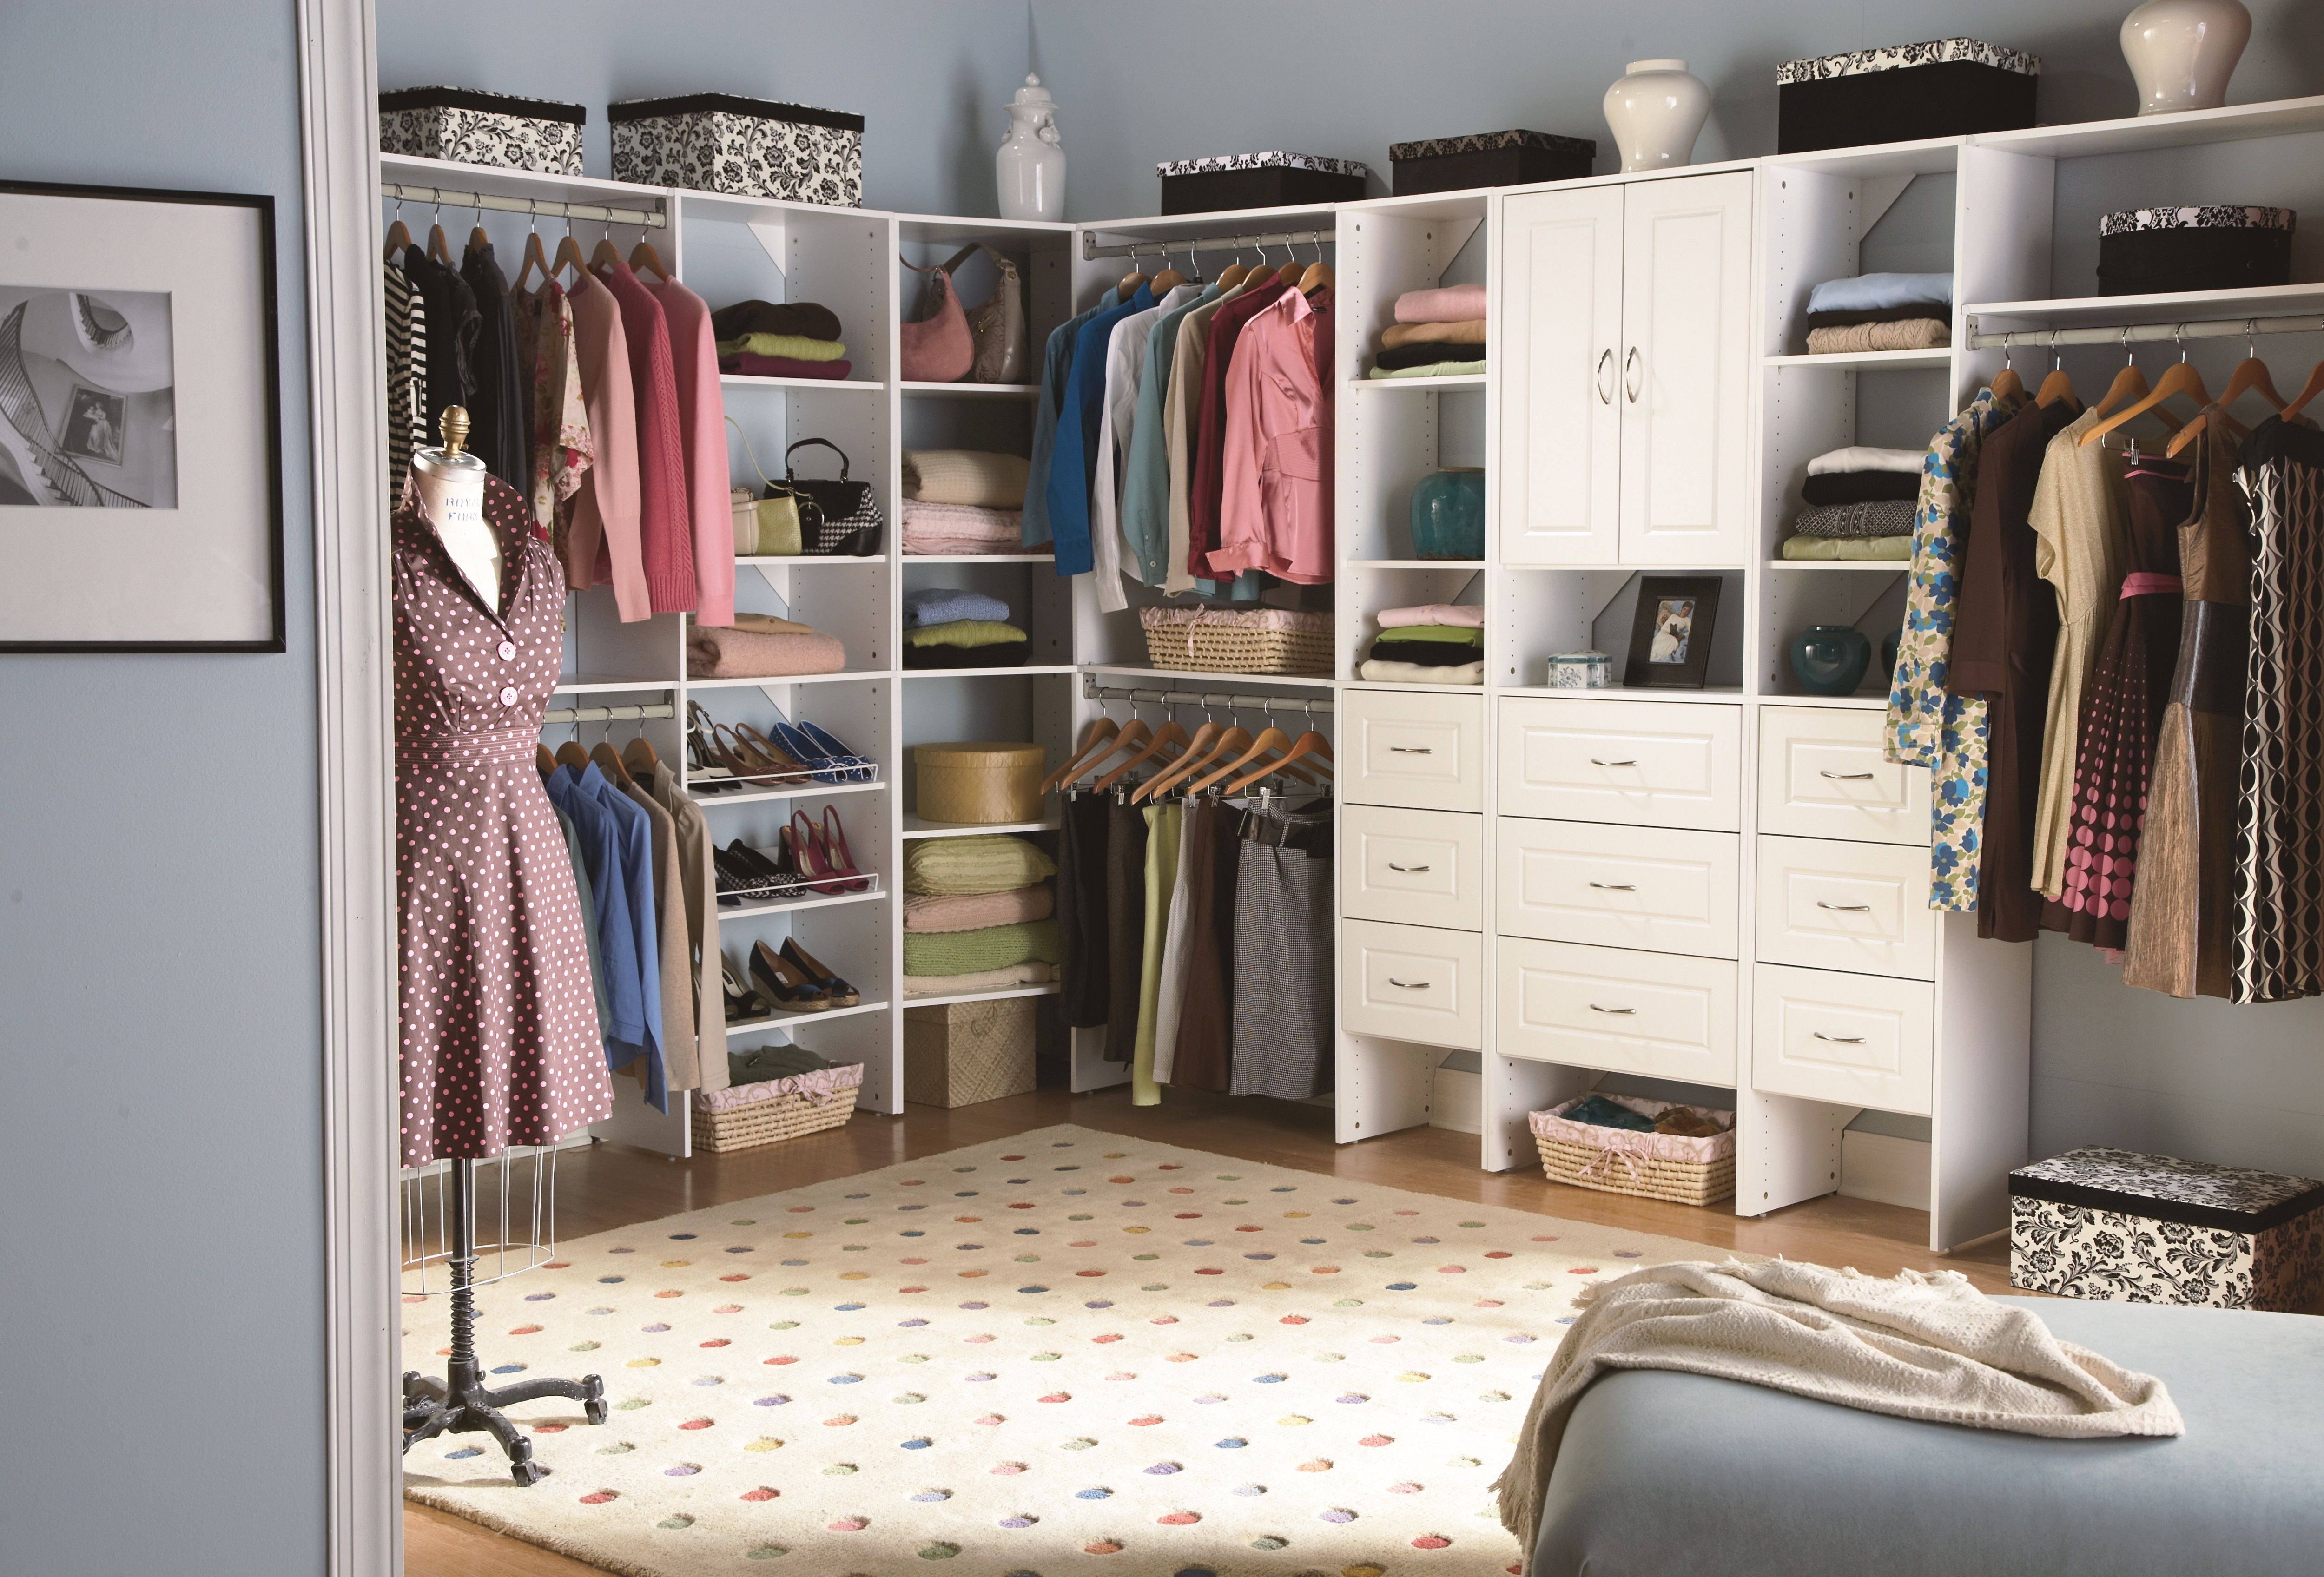 Make a small room a walk-in closet. Not every home is built with ...